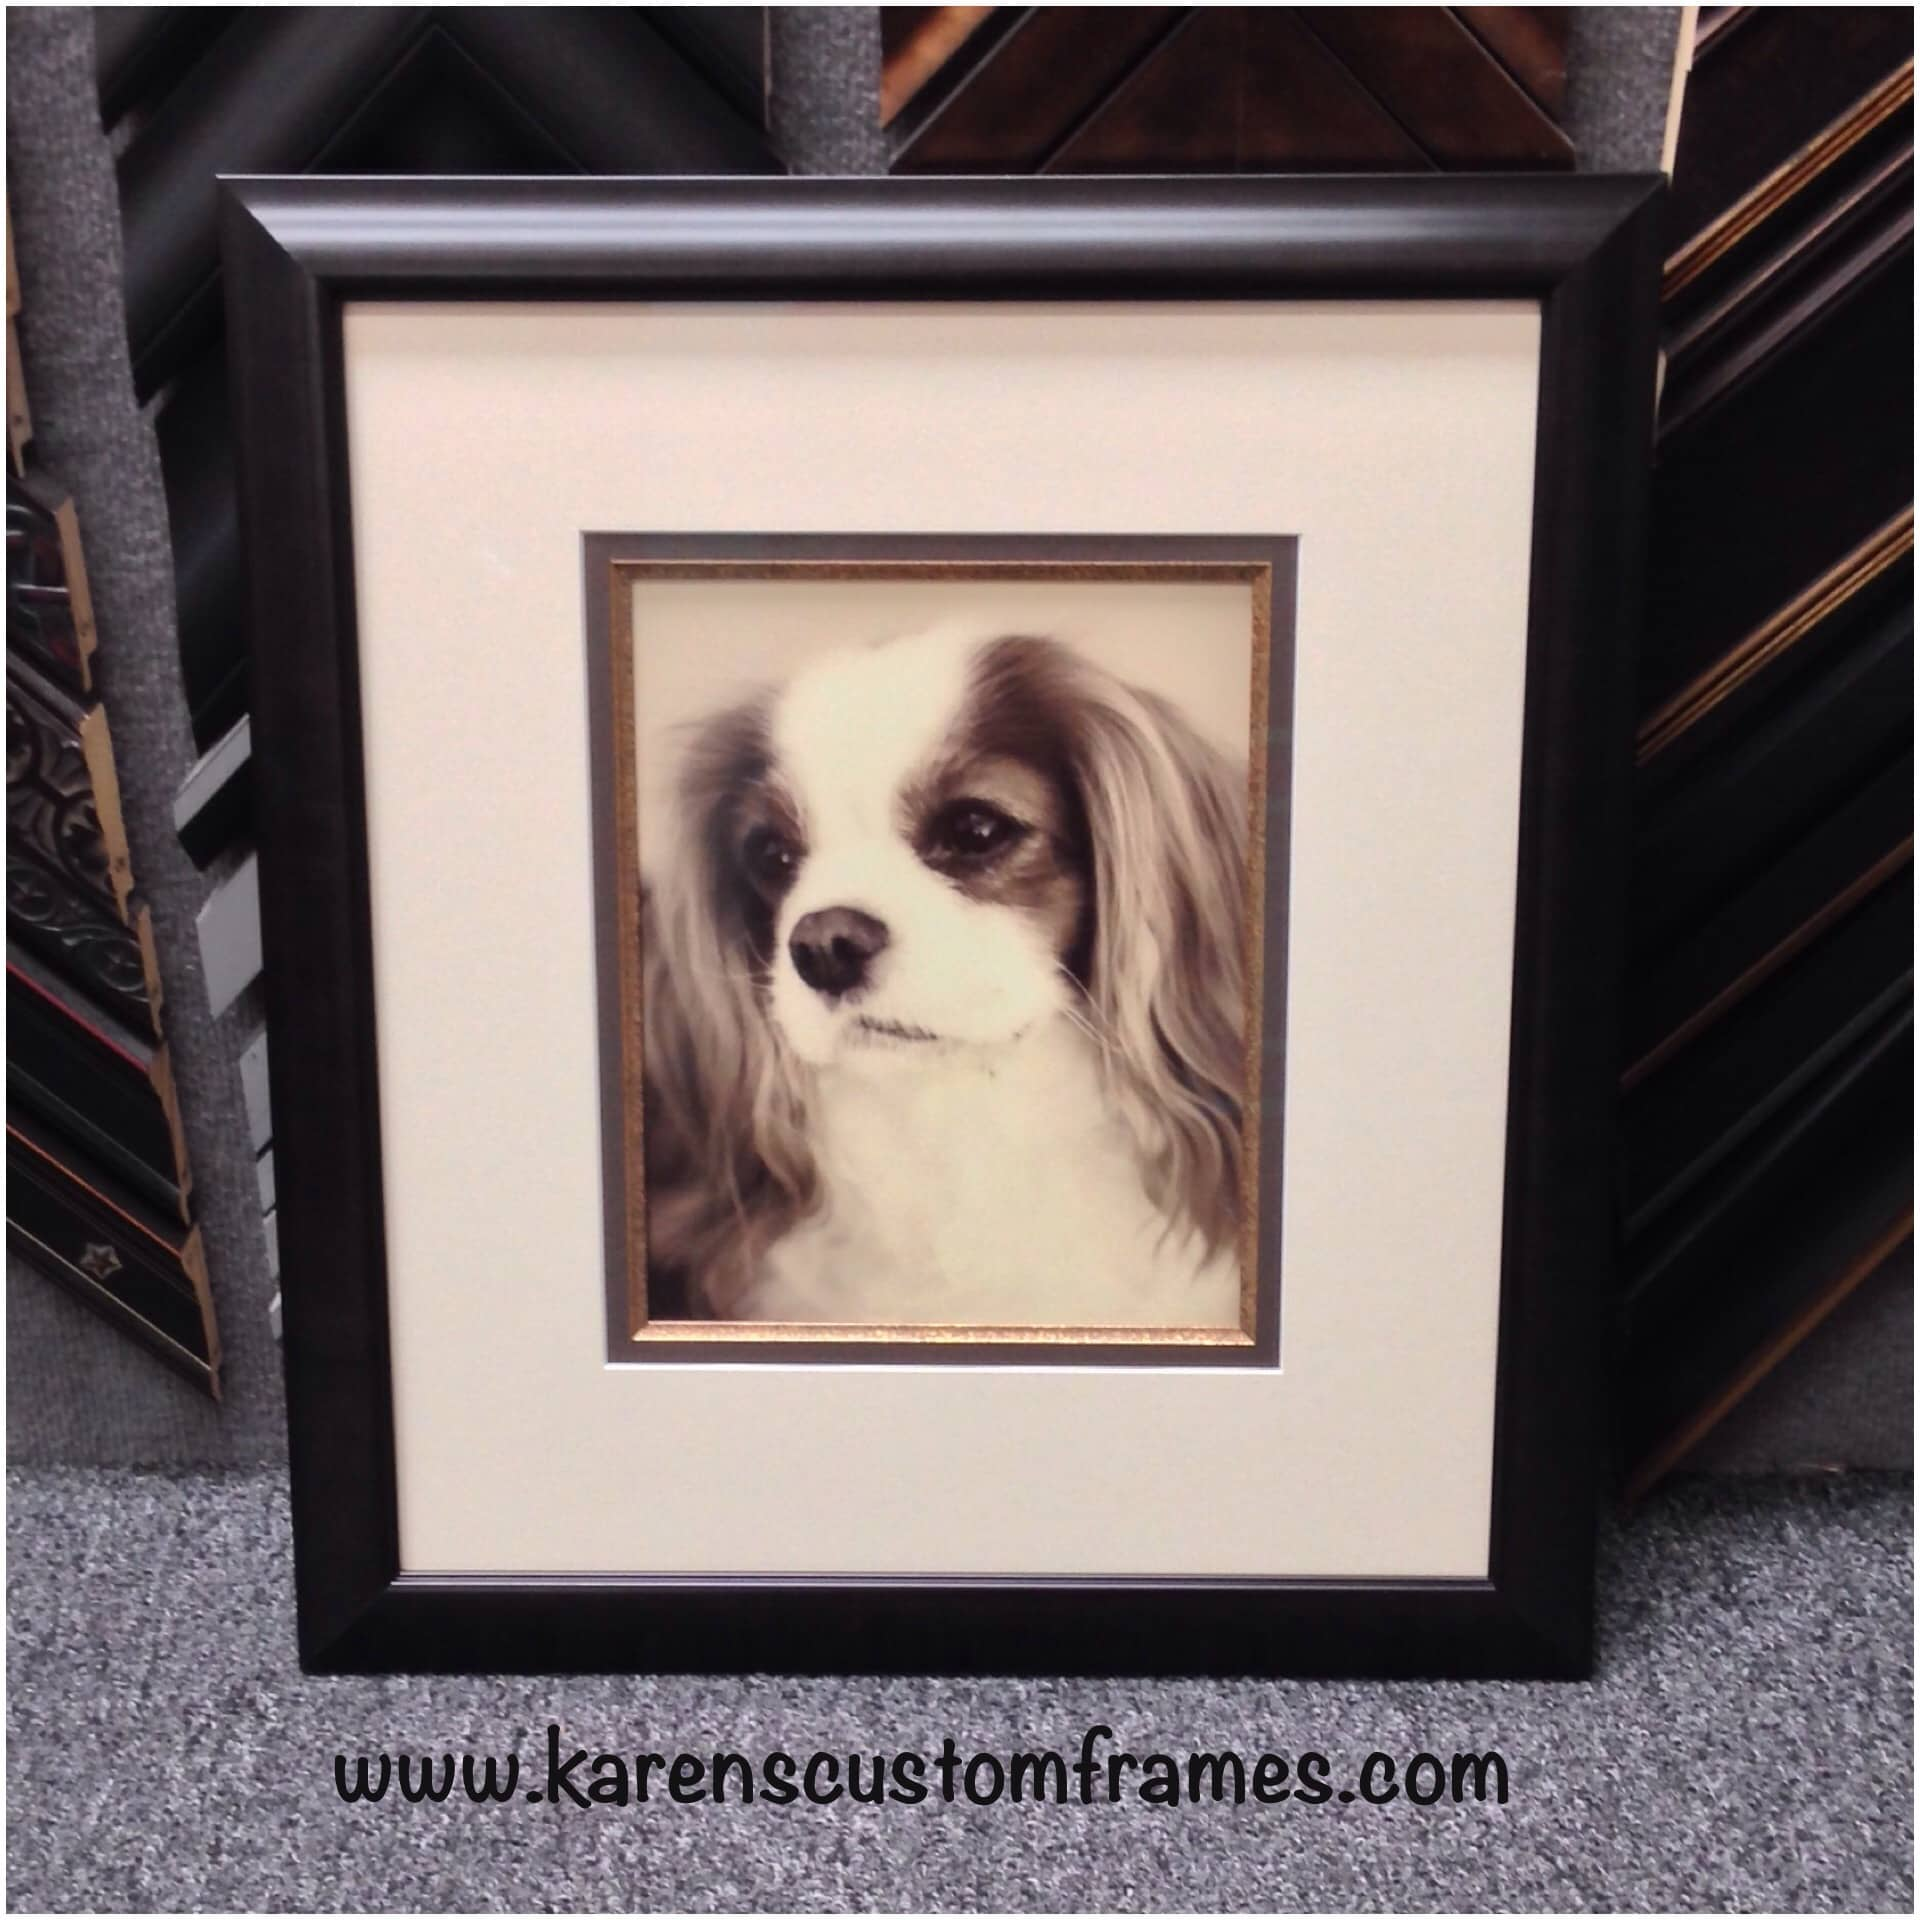 dog photography custom design and framing by karens detail custom frames